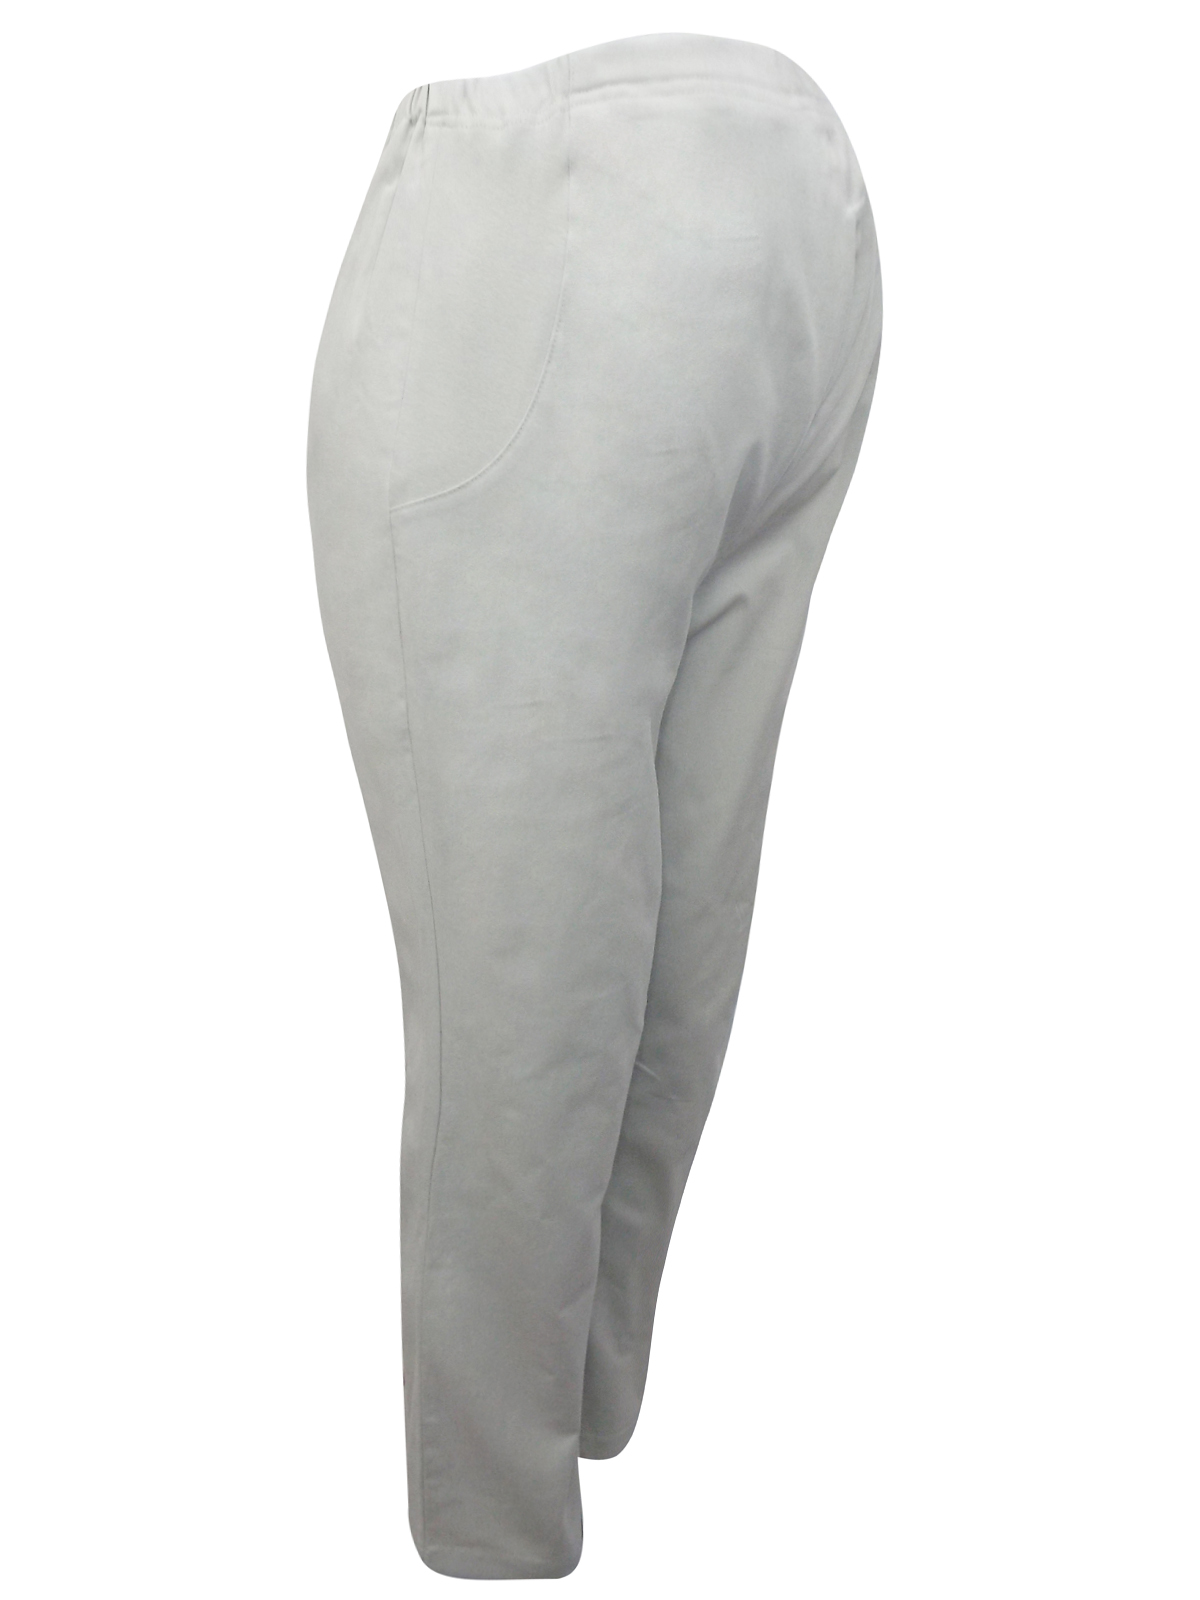 8c4a3b9cc3ae1 Stone Overbump Straight Leg Chino Trousers by Blooming Marvellous - Size 10  and 14. SKU[12064]